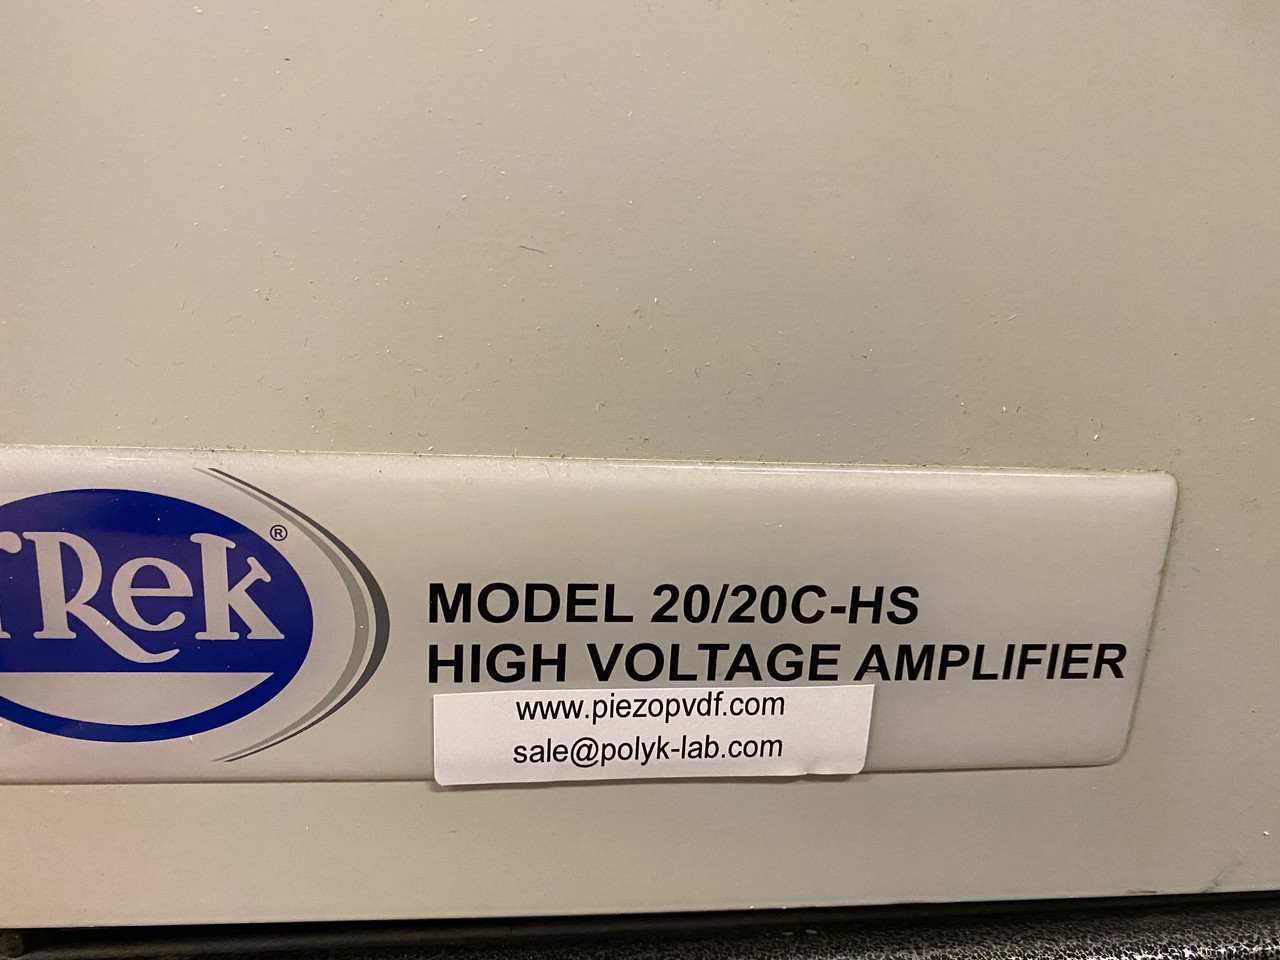 Trek 20/20C-HS +/-20 kV/60 mA High Voltage Amplifier & Power Supply with All Cables, Refurbished